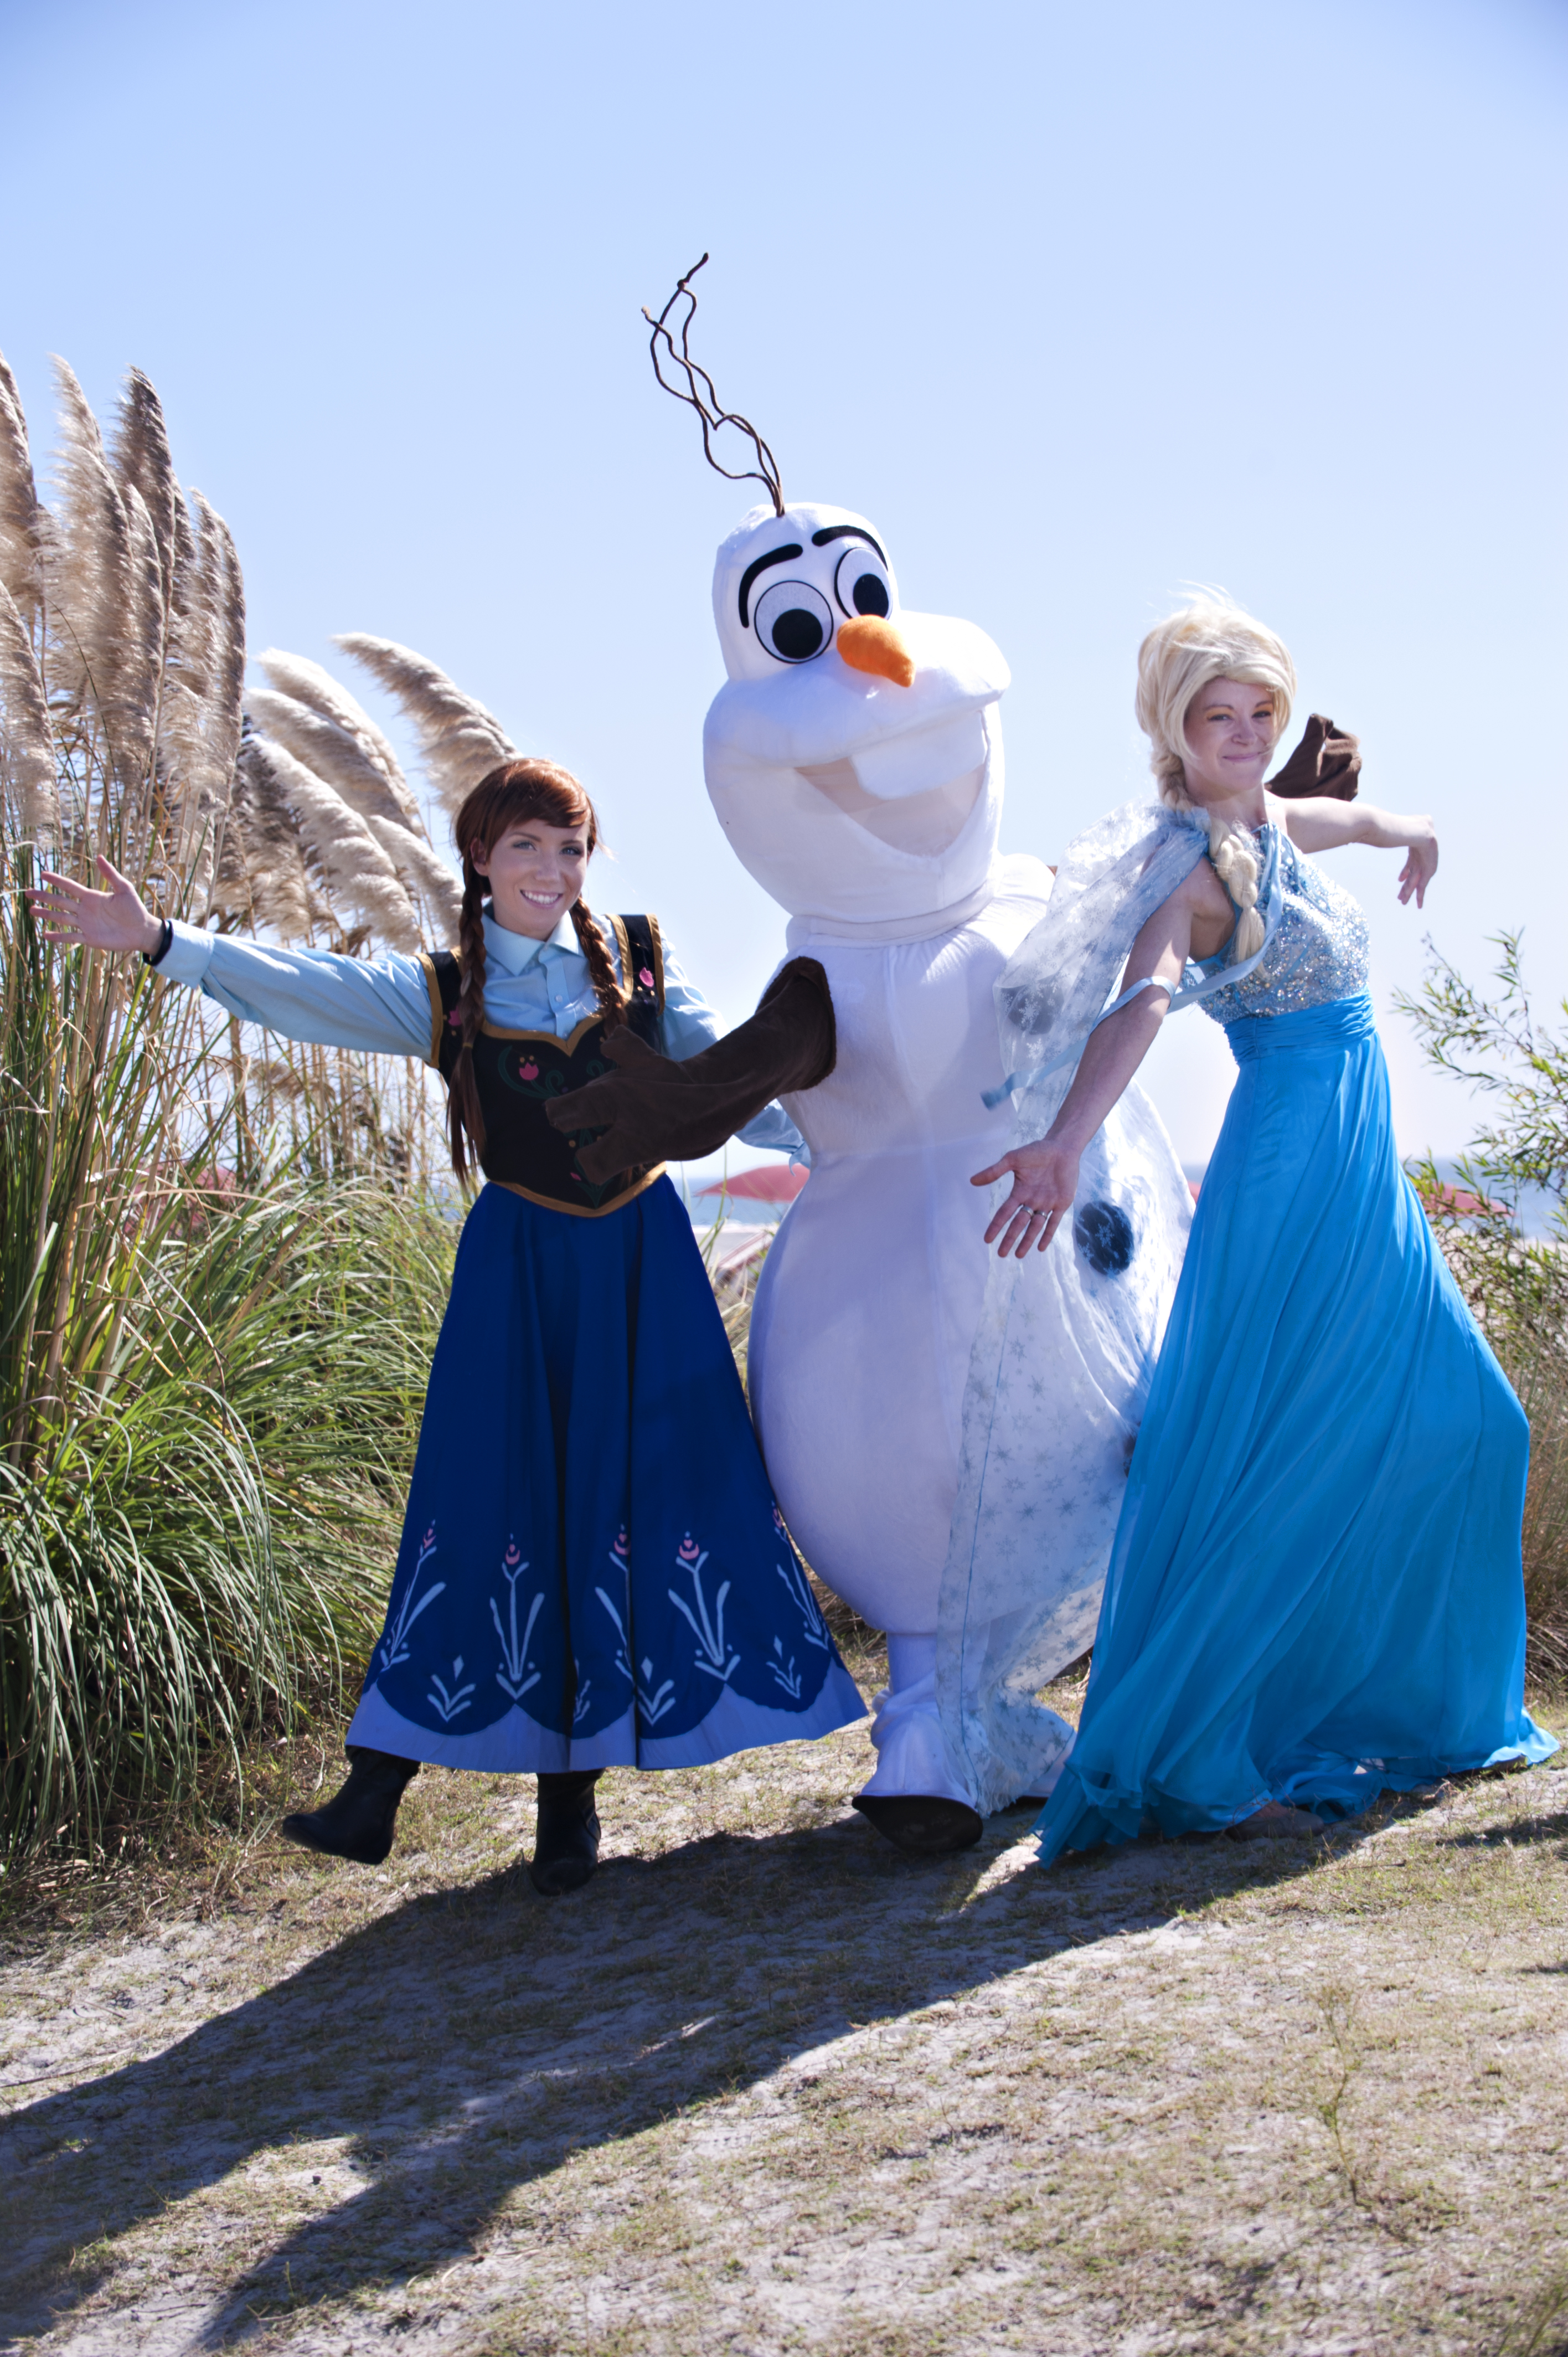 Ice Queen and friends having fun!